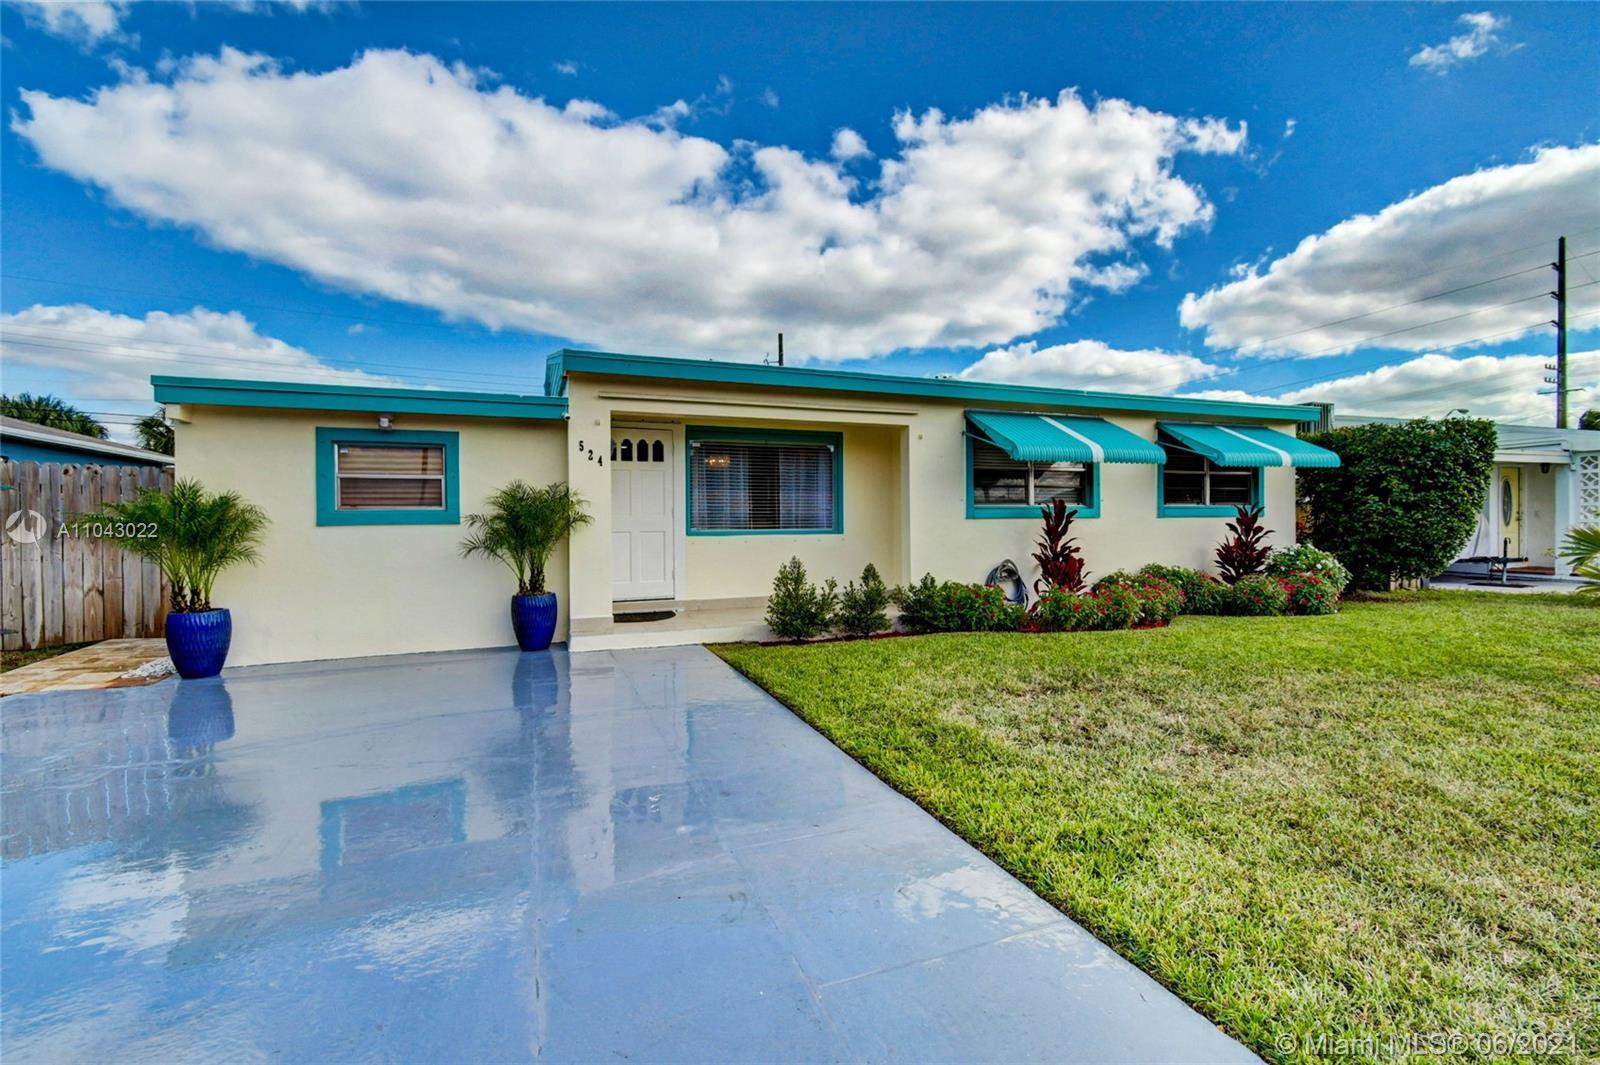 Beautifully renovated property features 4/2 main house, 1/1 guest house, Large Island eat-in kitchen